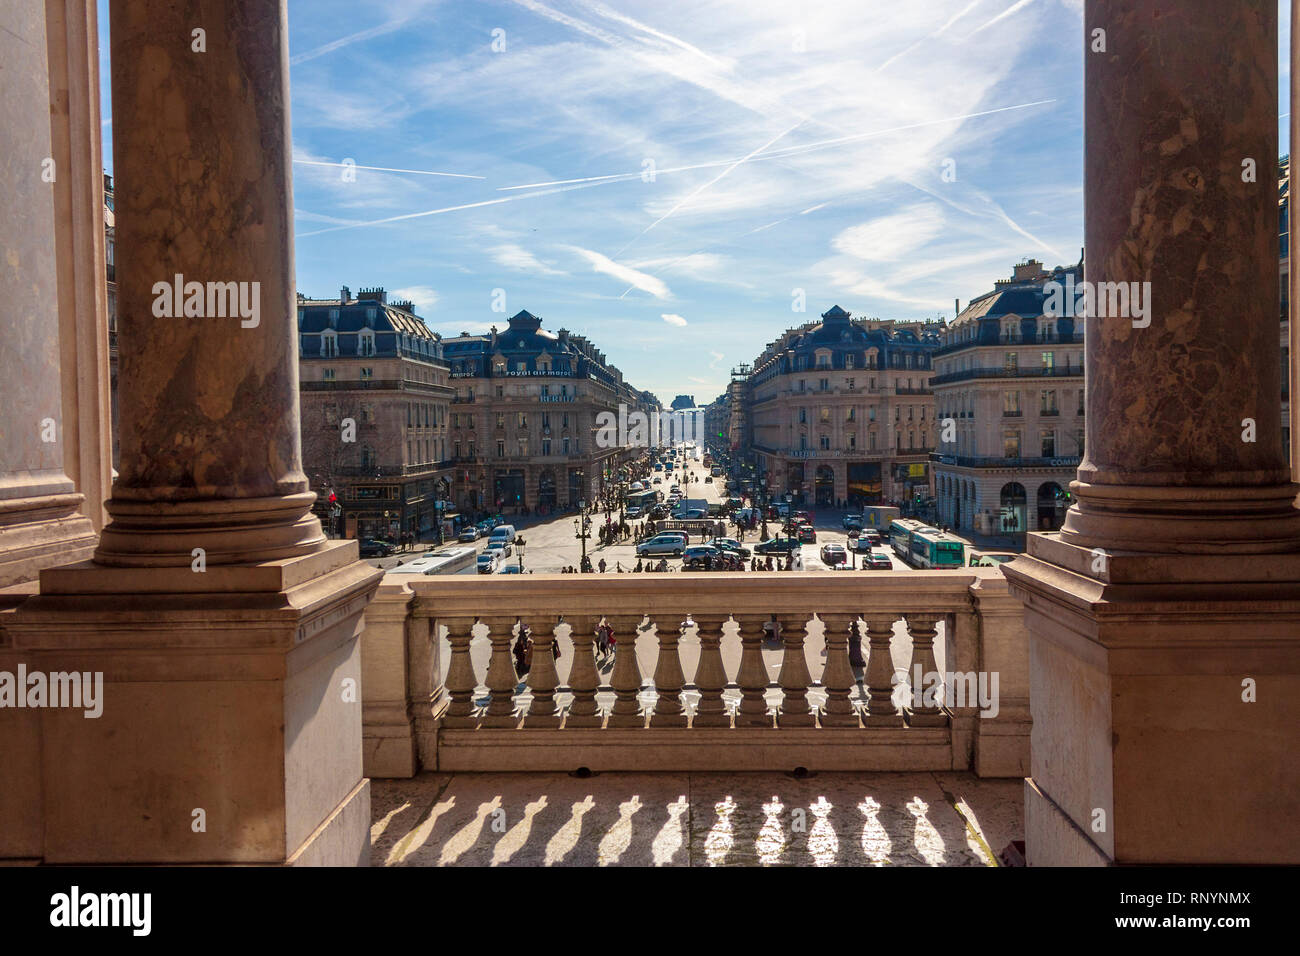 Looking out onto the Place de l'Opéra from the Palais Garnier, Paris, France Stock Photo